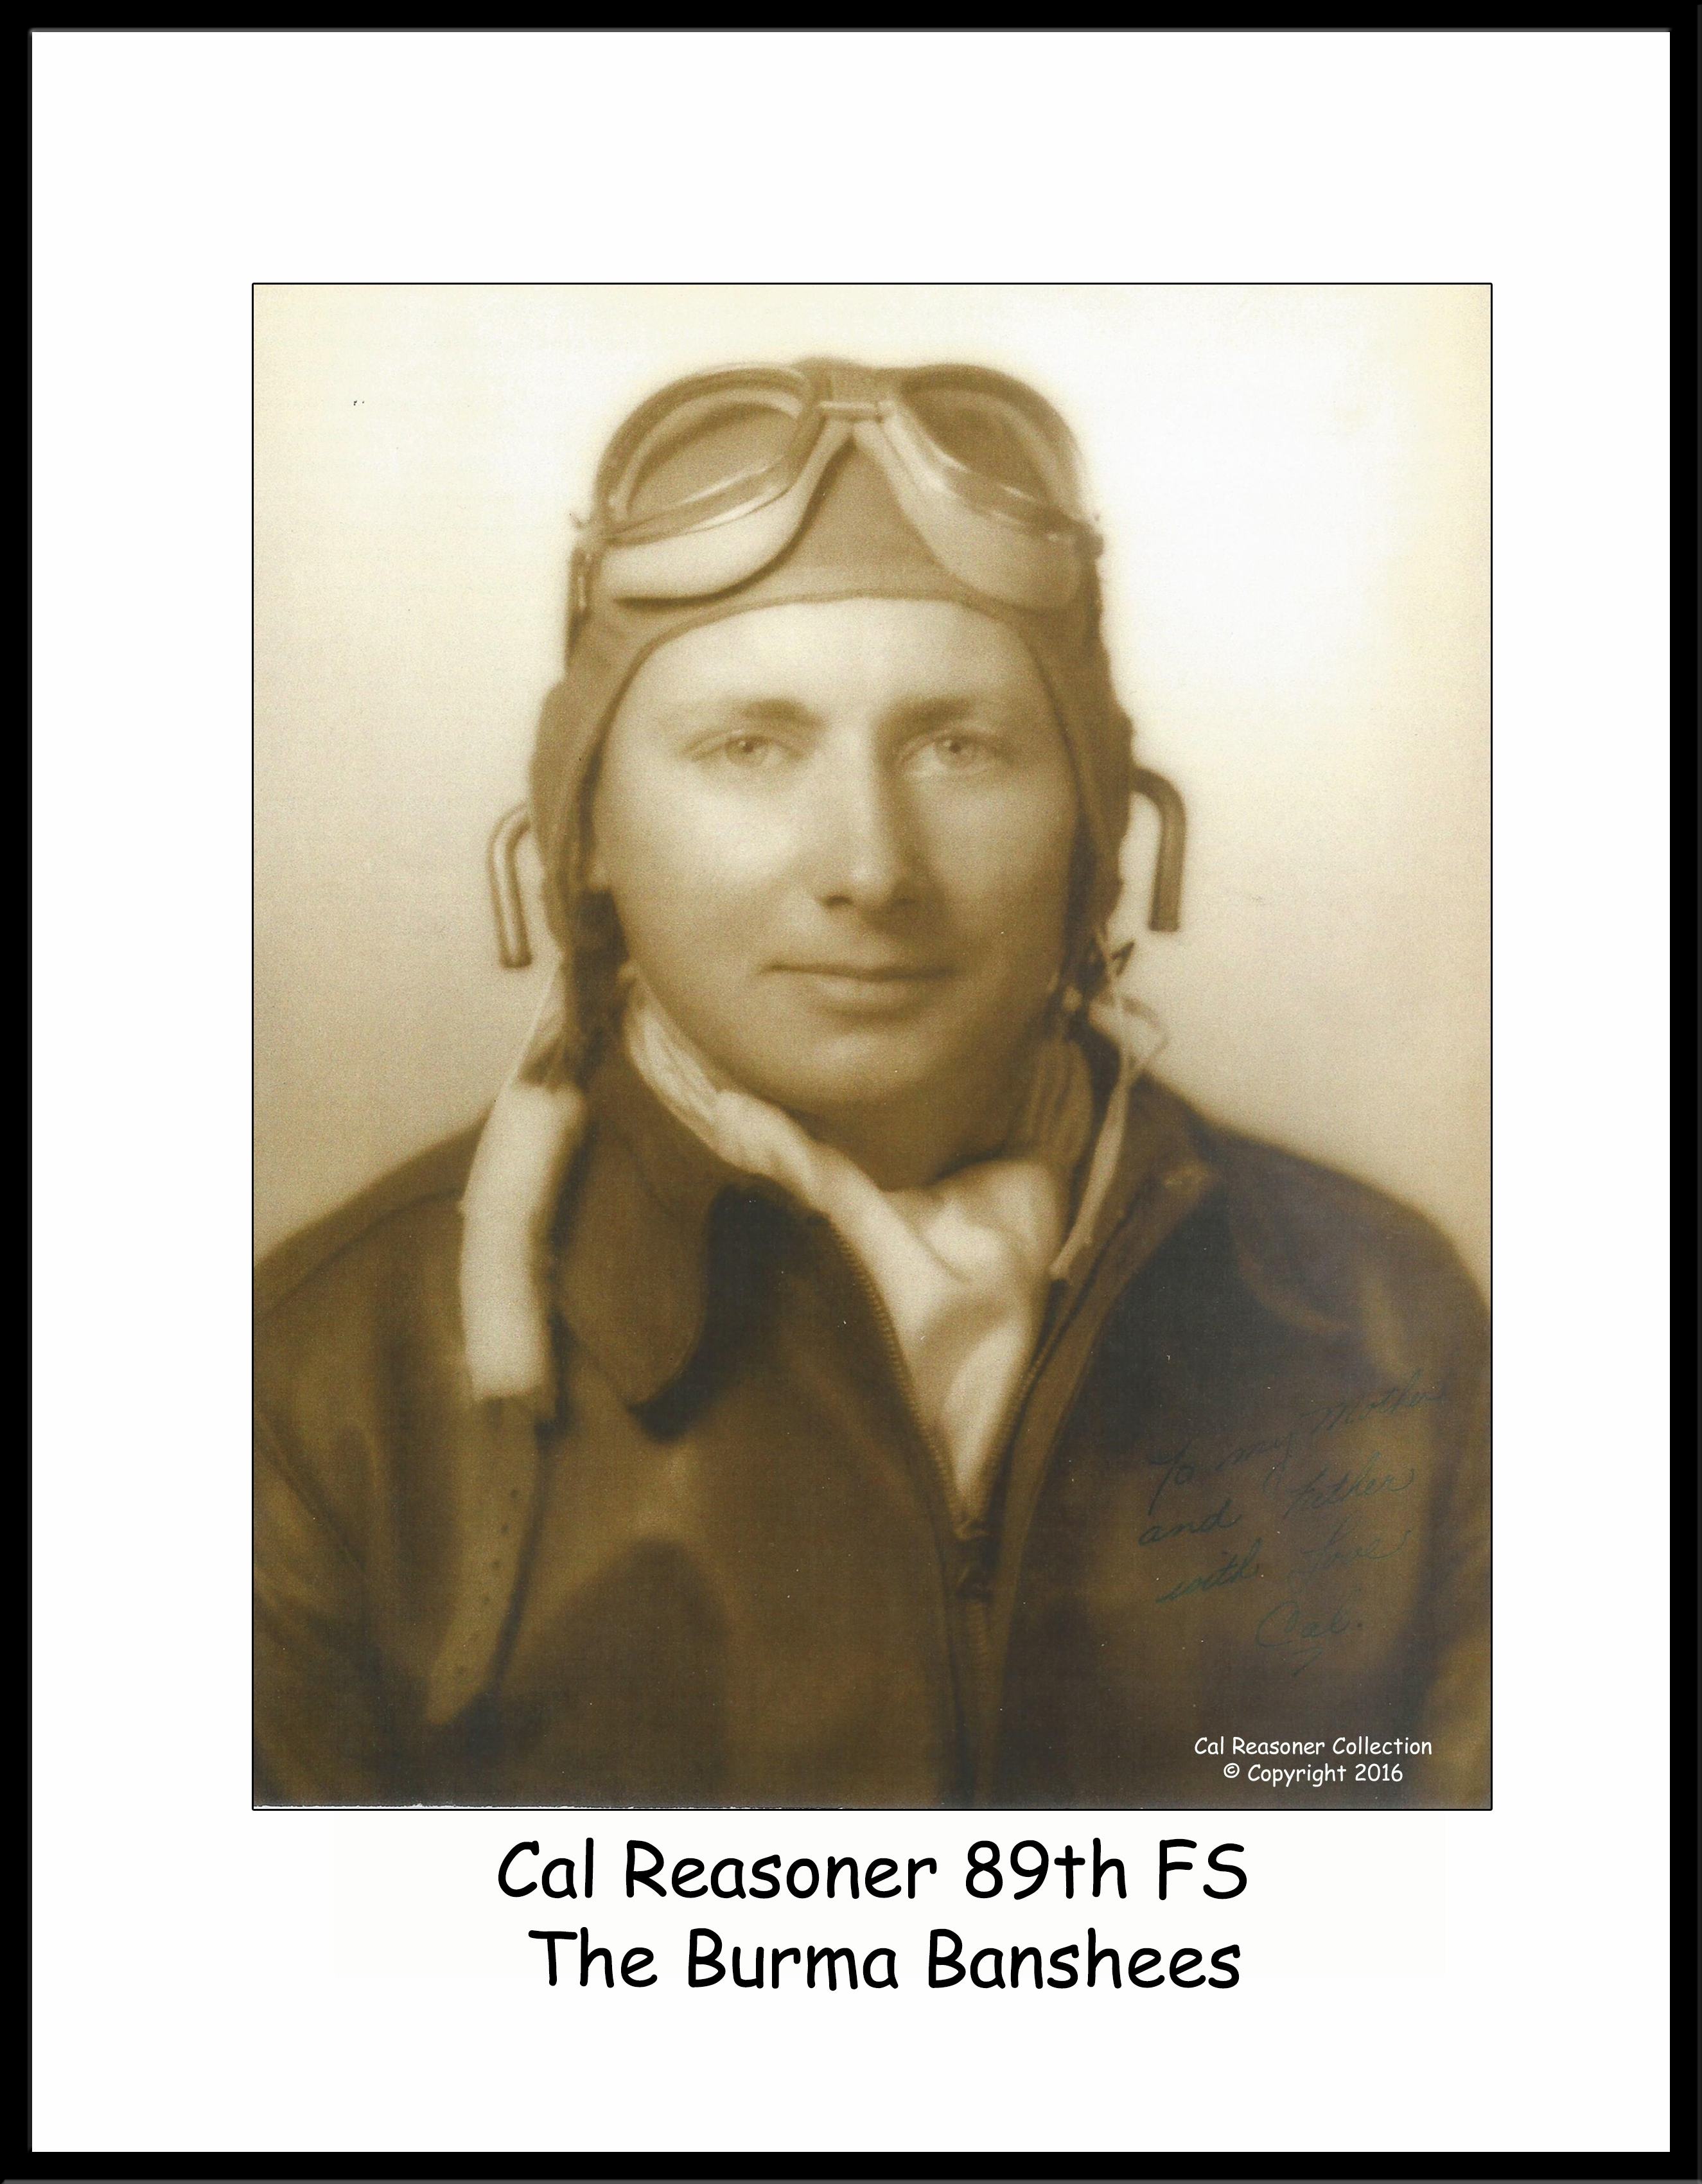 LT Calvin H. Reasoner